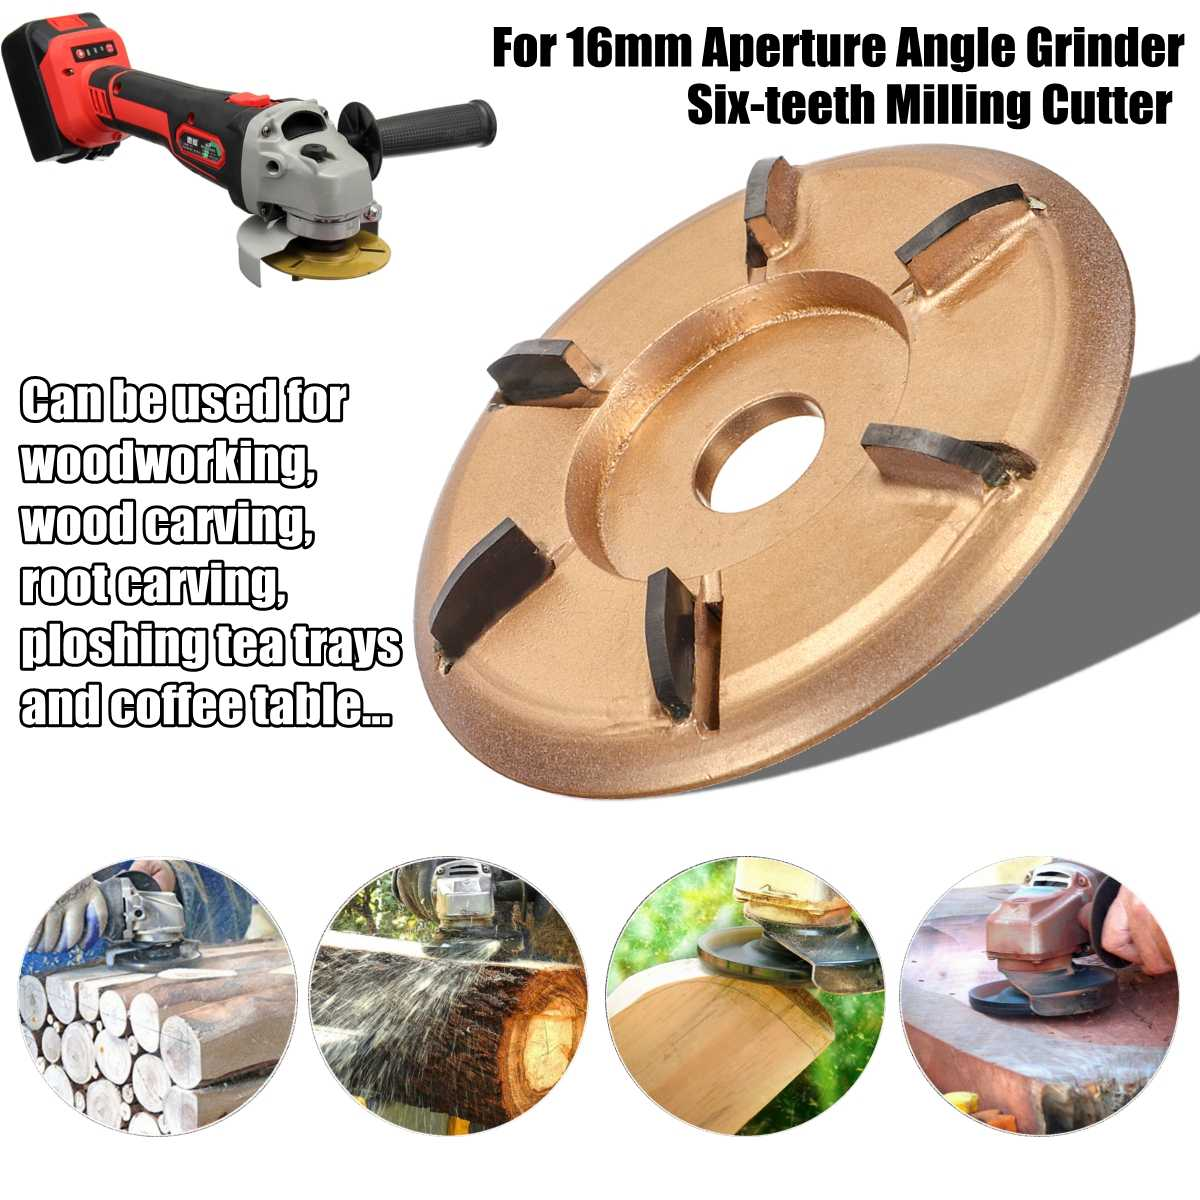 90mm H16 Digging Grinder Wood Turbo Plane Woodworking Tools Attachment Milling Cutter Tool For 16mm Aperture Angle Grinder|Grinders| |  - title=